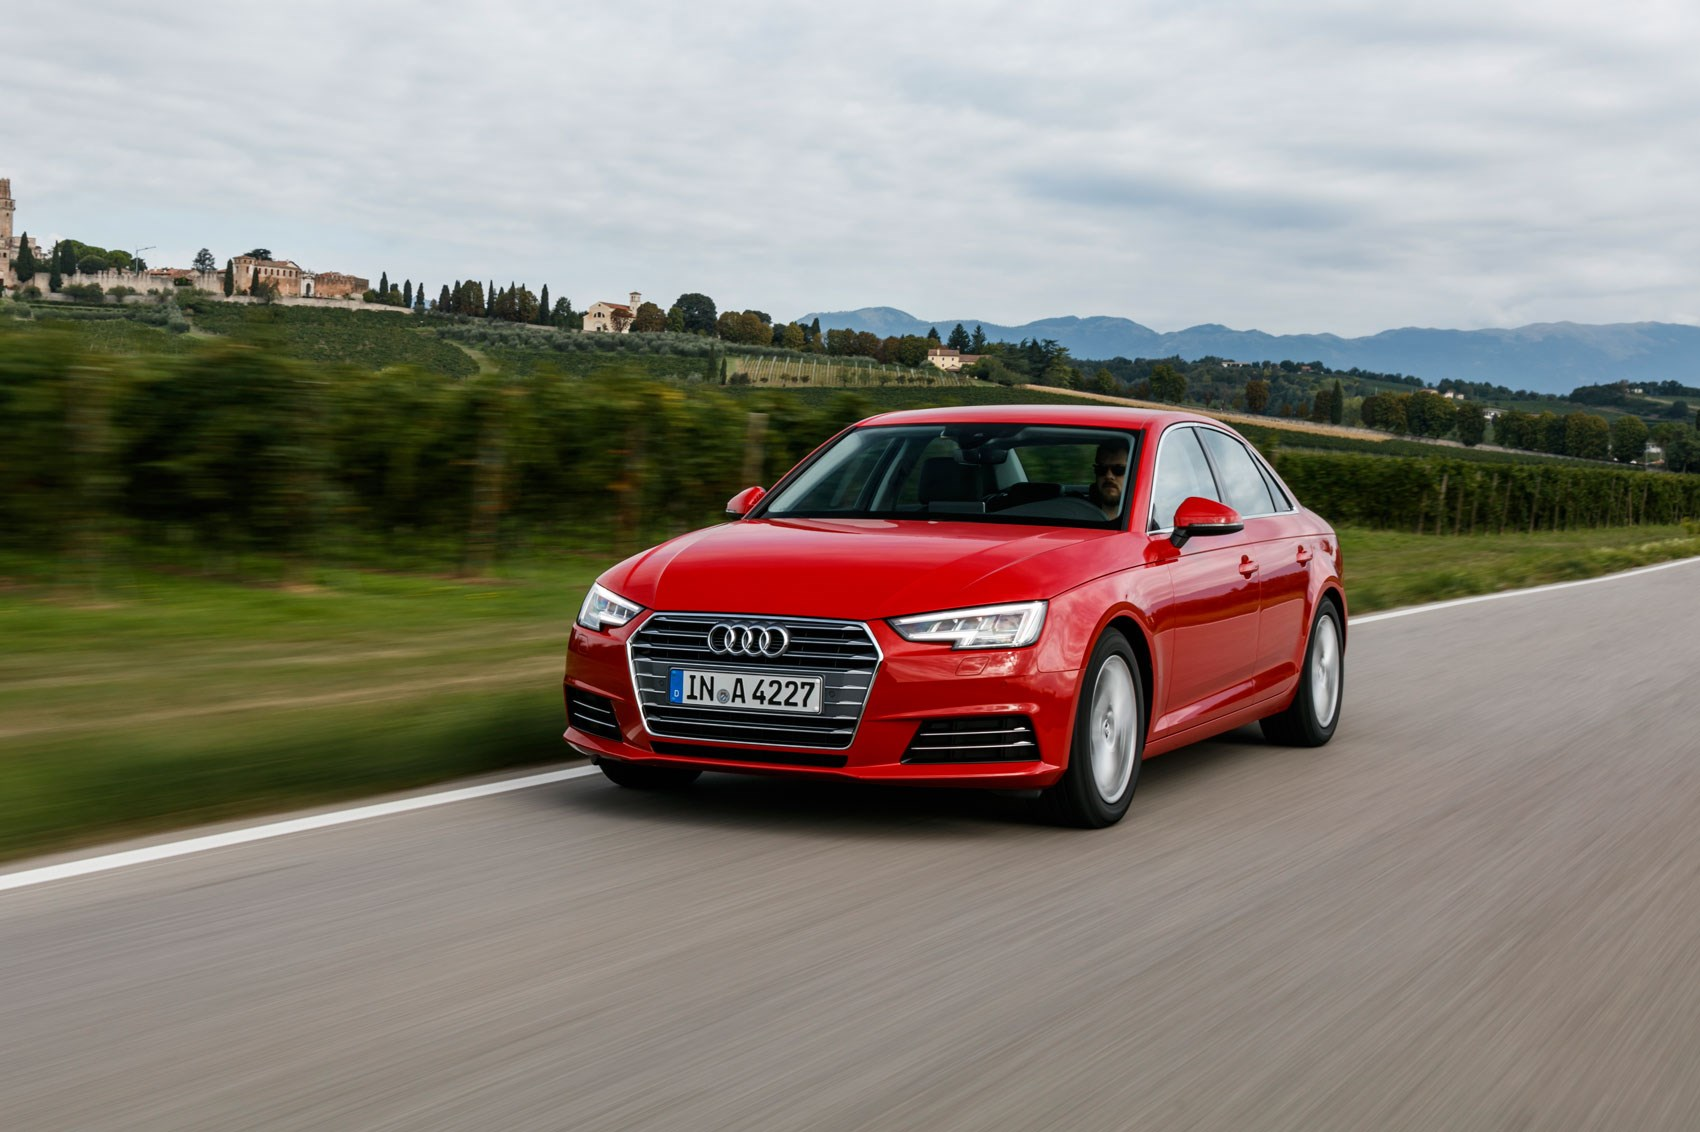 Audi a4 avant 30 tdi s line 2017 review by car magazine audi a4 20 tdi 190 sport manual 2015 review sciox Image collections